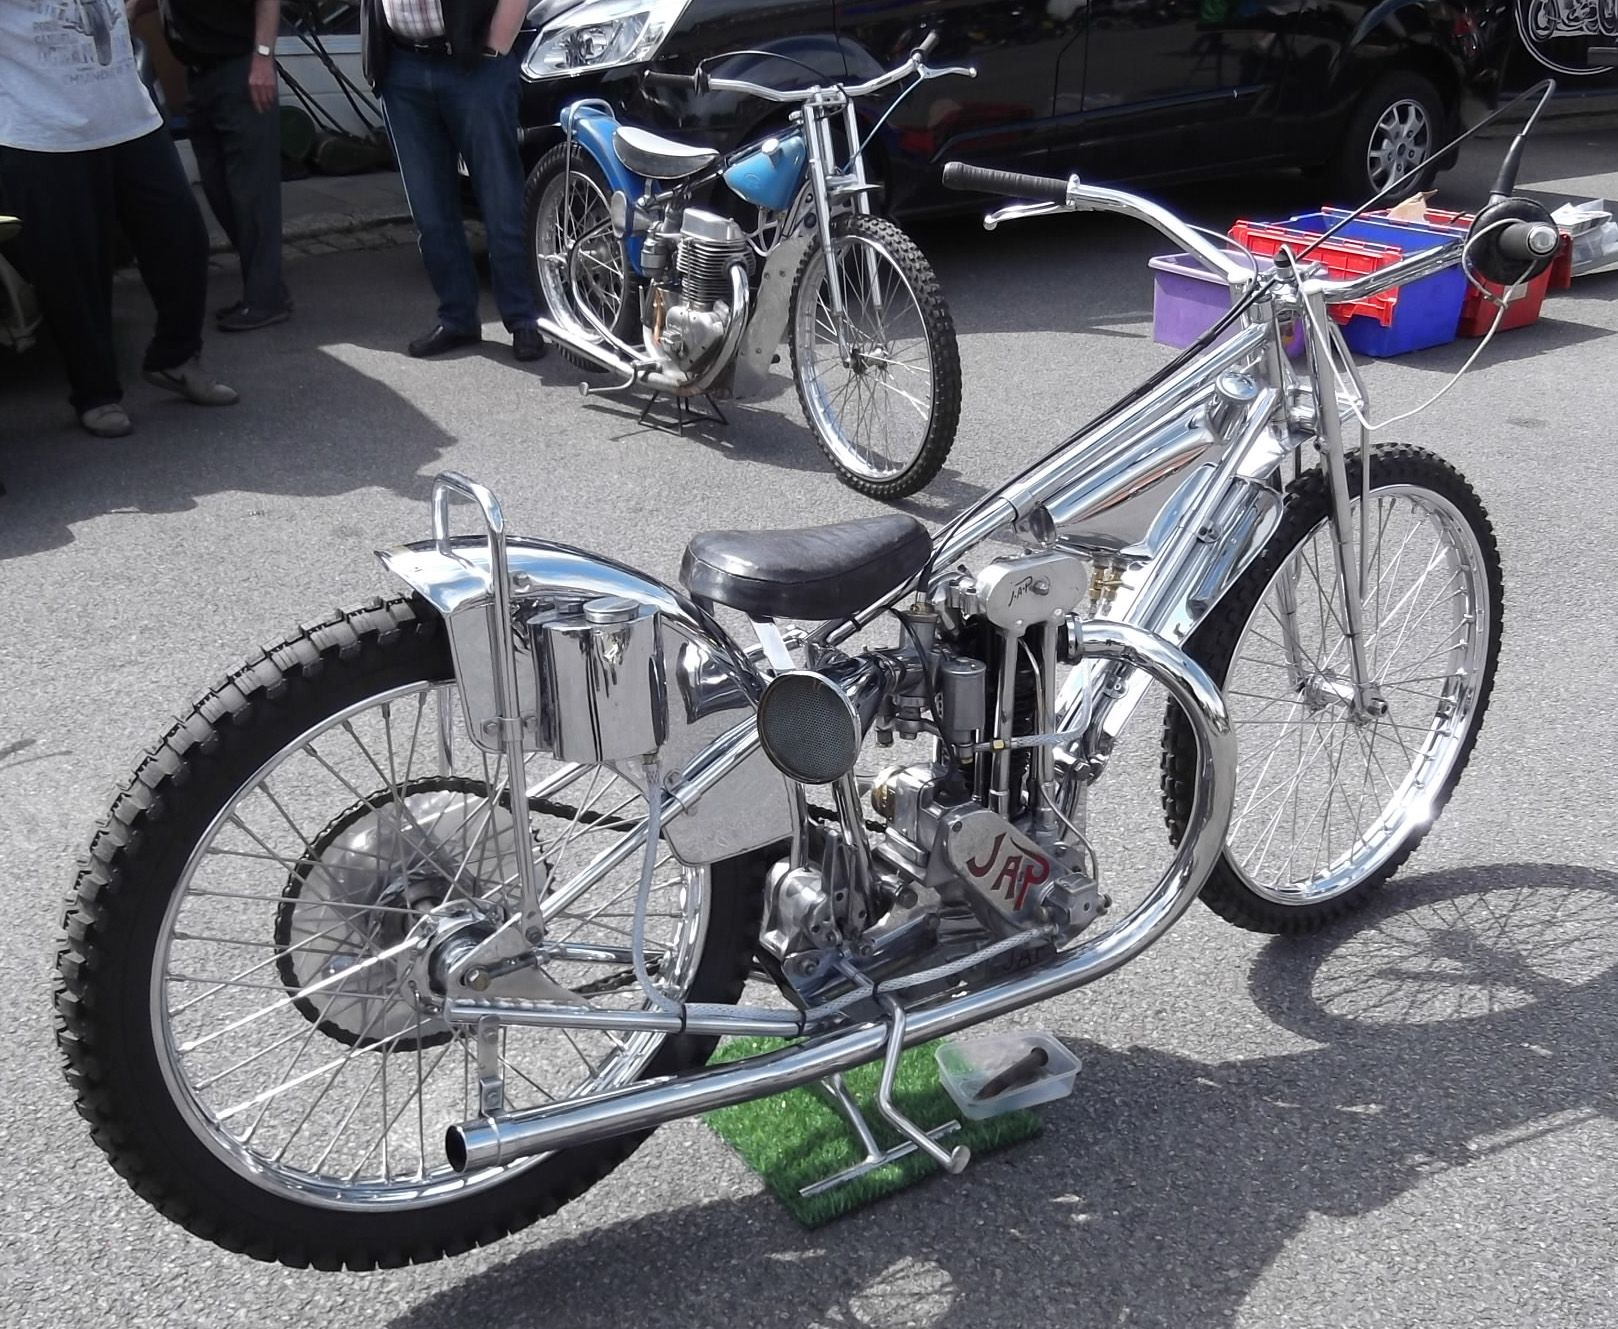 Jap Engined Speedway Bike At Whitewebbs Classic Bike Show 2016